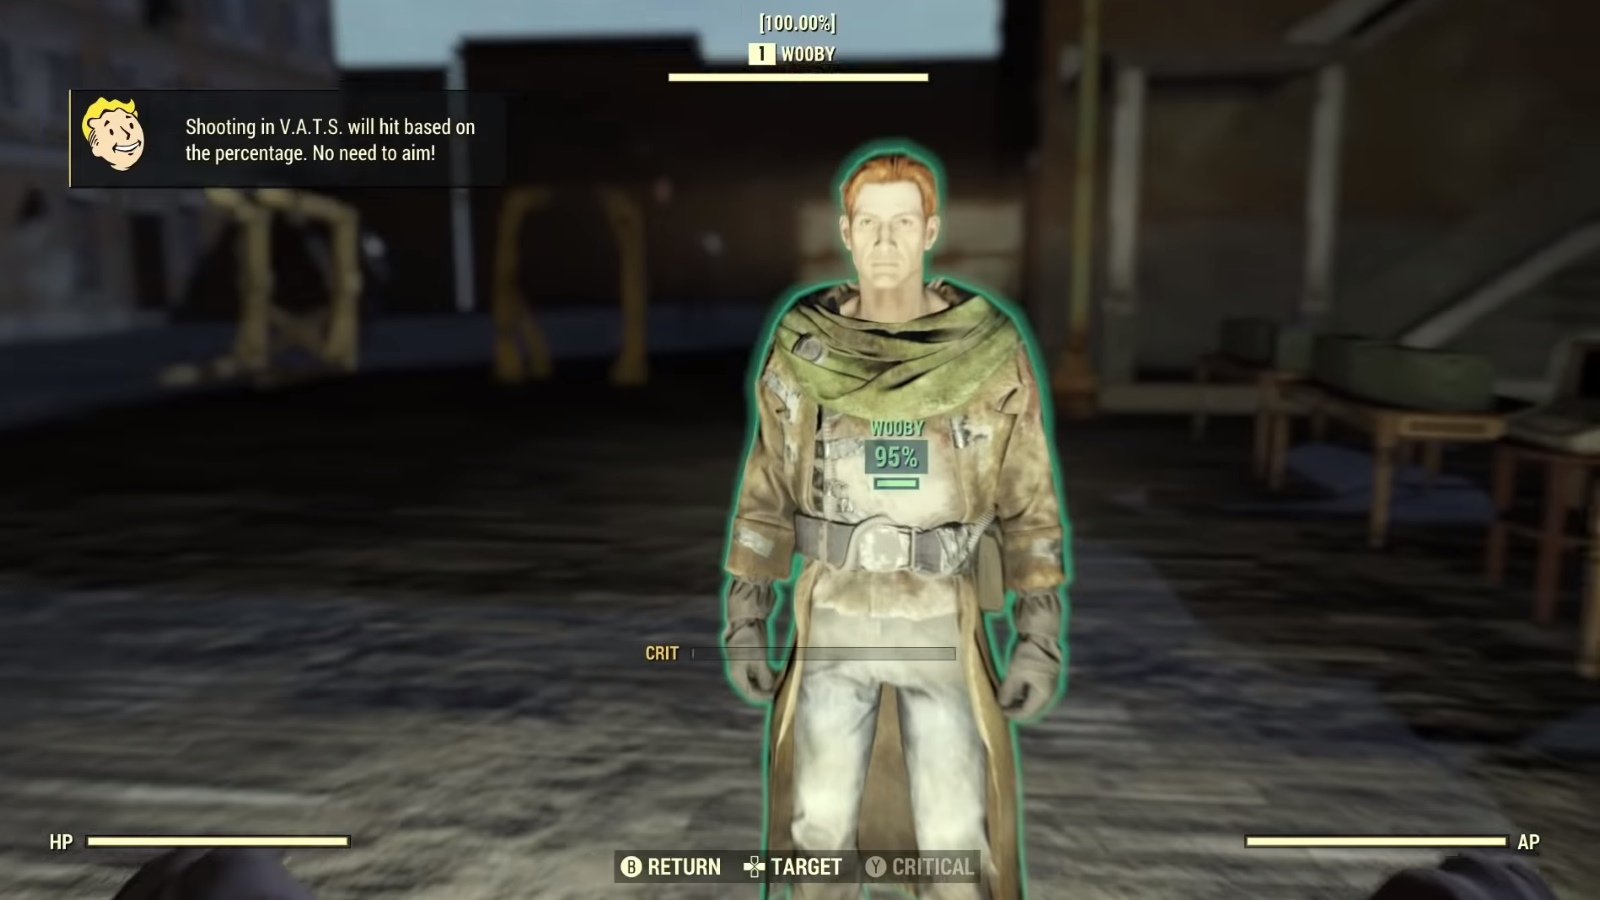 Fallout 76 developer room holds Wooby, the last human NPC